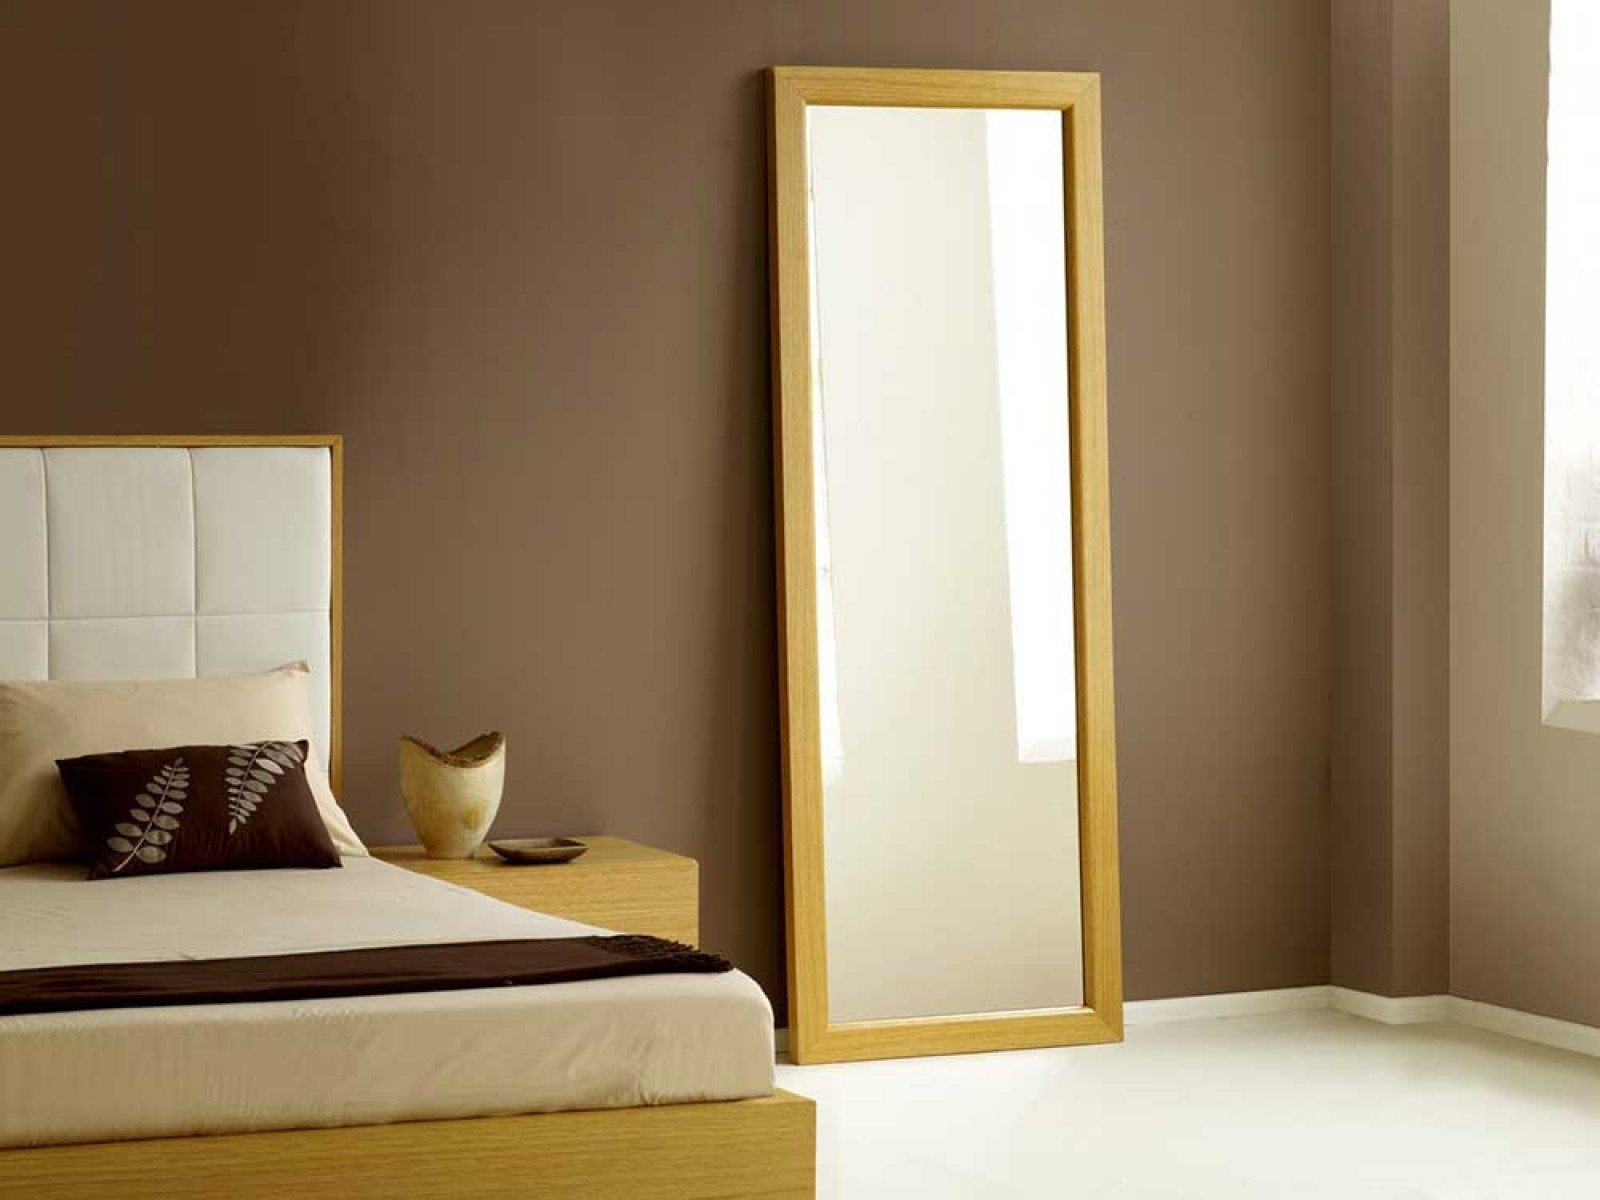 Flooring Decorative Full Length Wall Mirror Tonyswadenalocker Regarding Long Mirrors For Sale (Image 8 of 15)